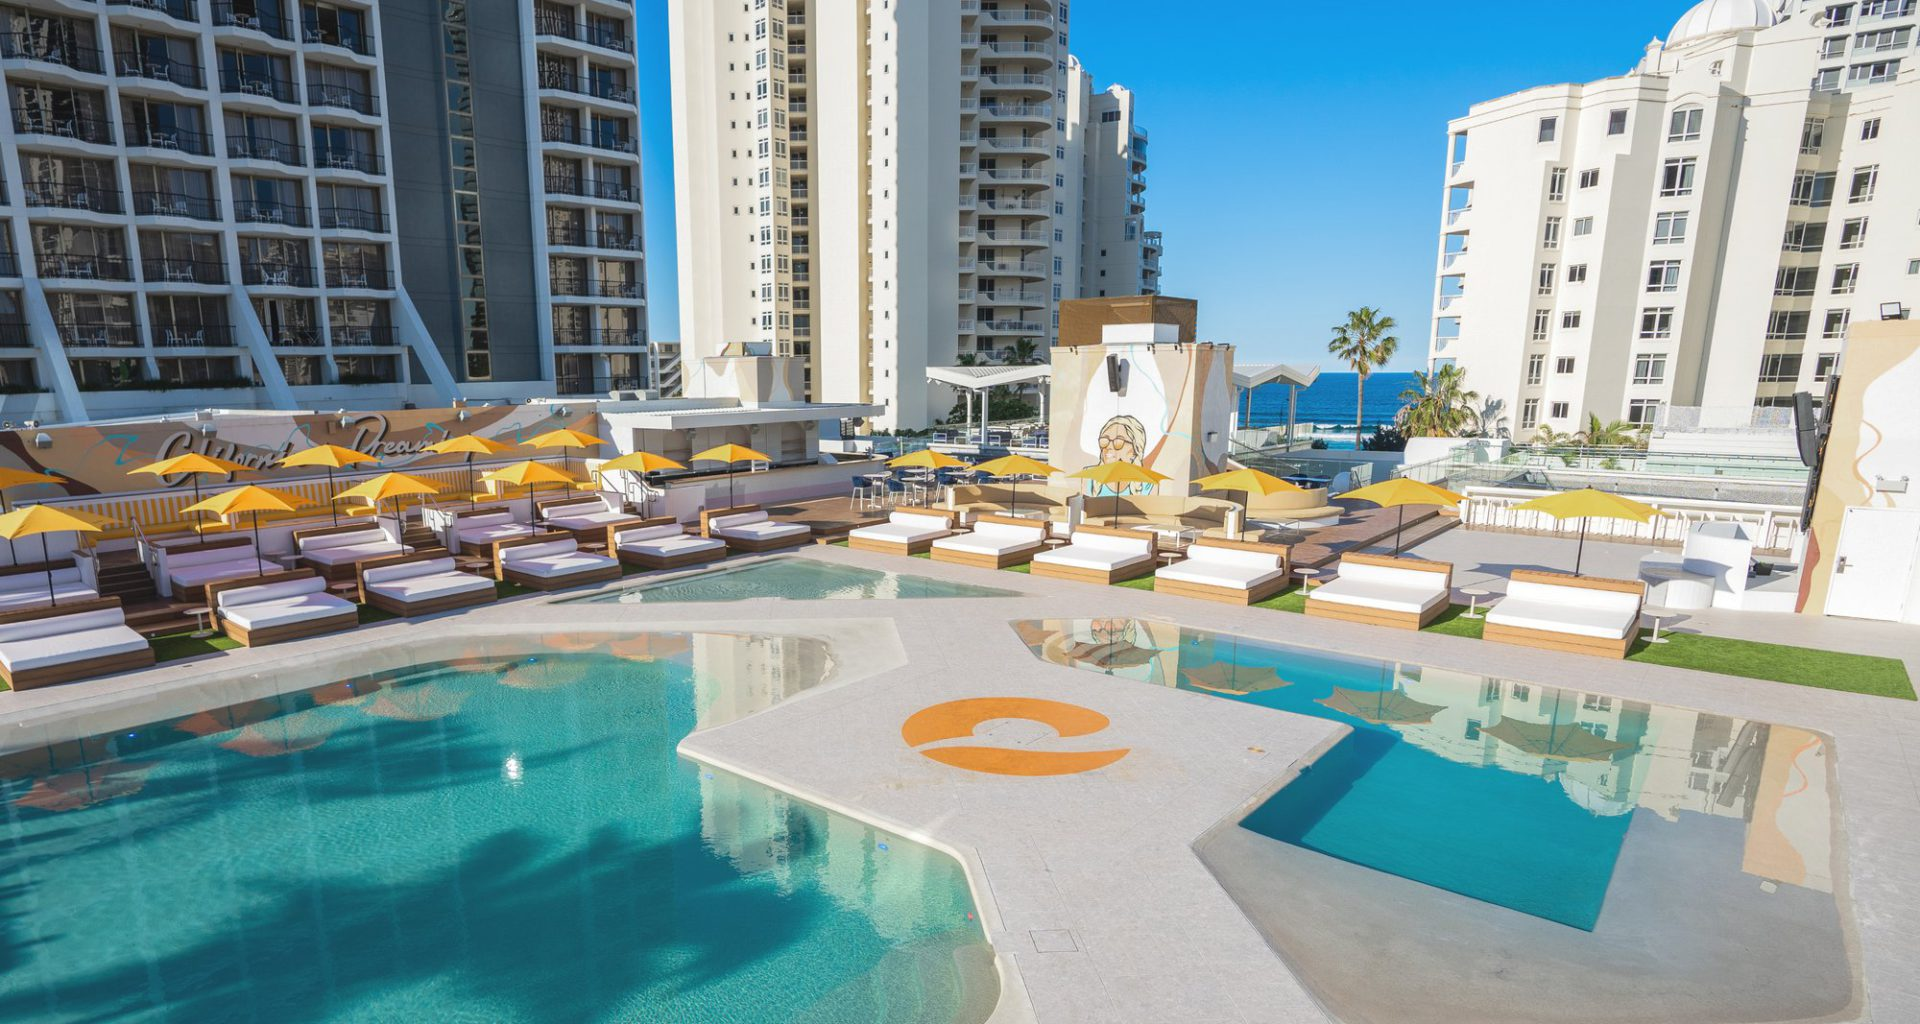 Cali Beach Club the luxury poolside oasis opens this month